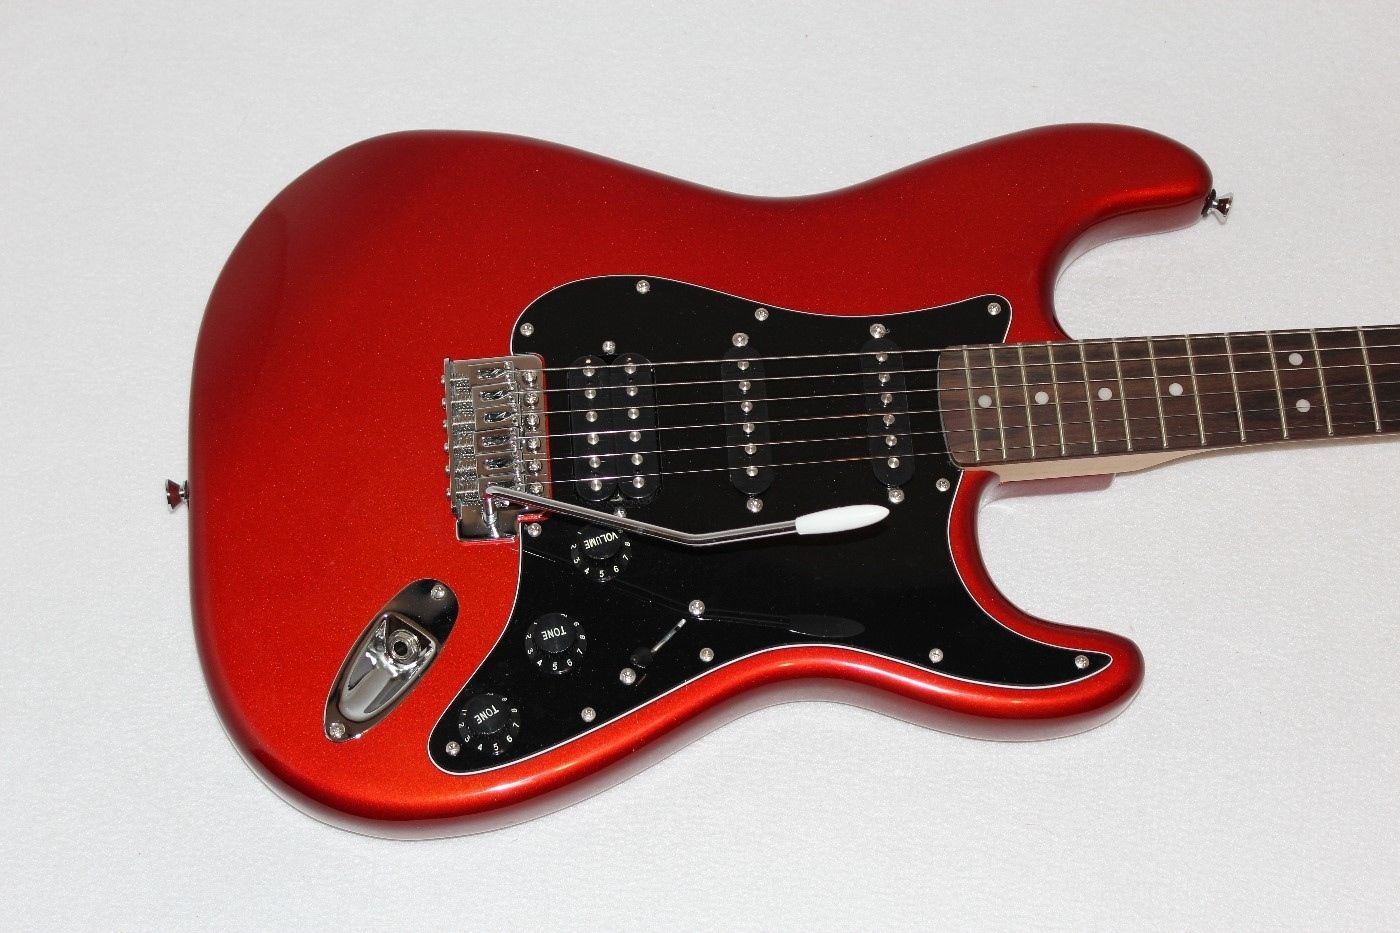 Fender Squier Affinity Stratocaster HSS Red Electric Guitar